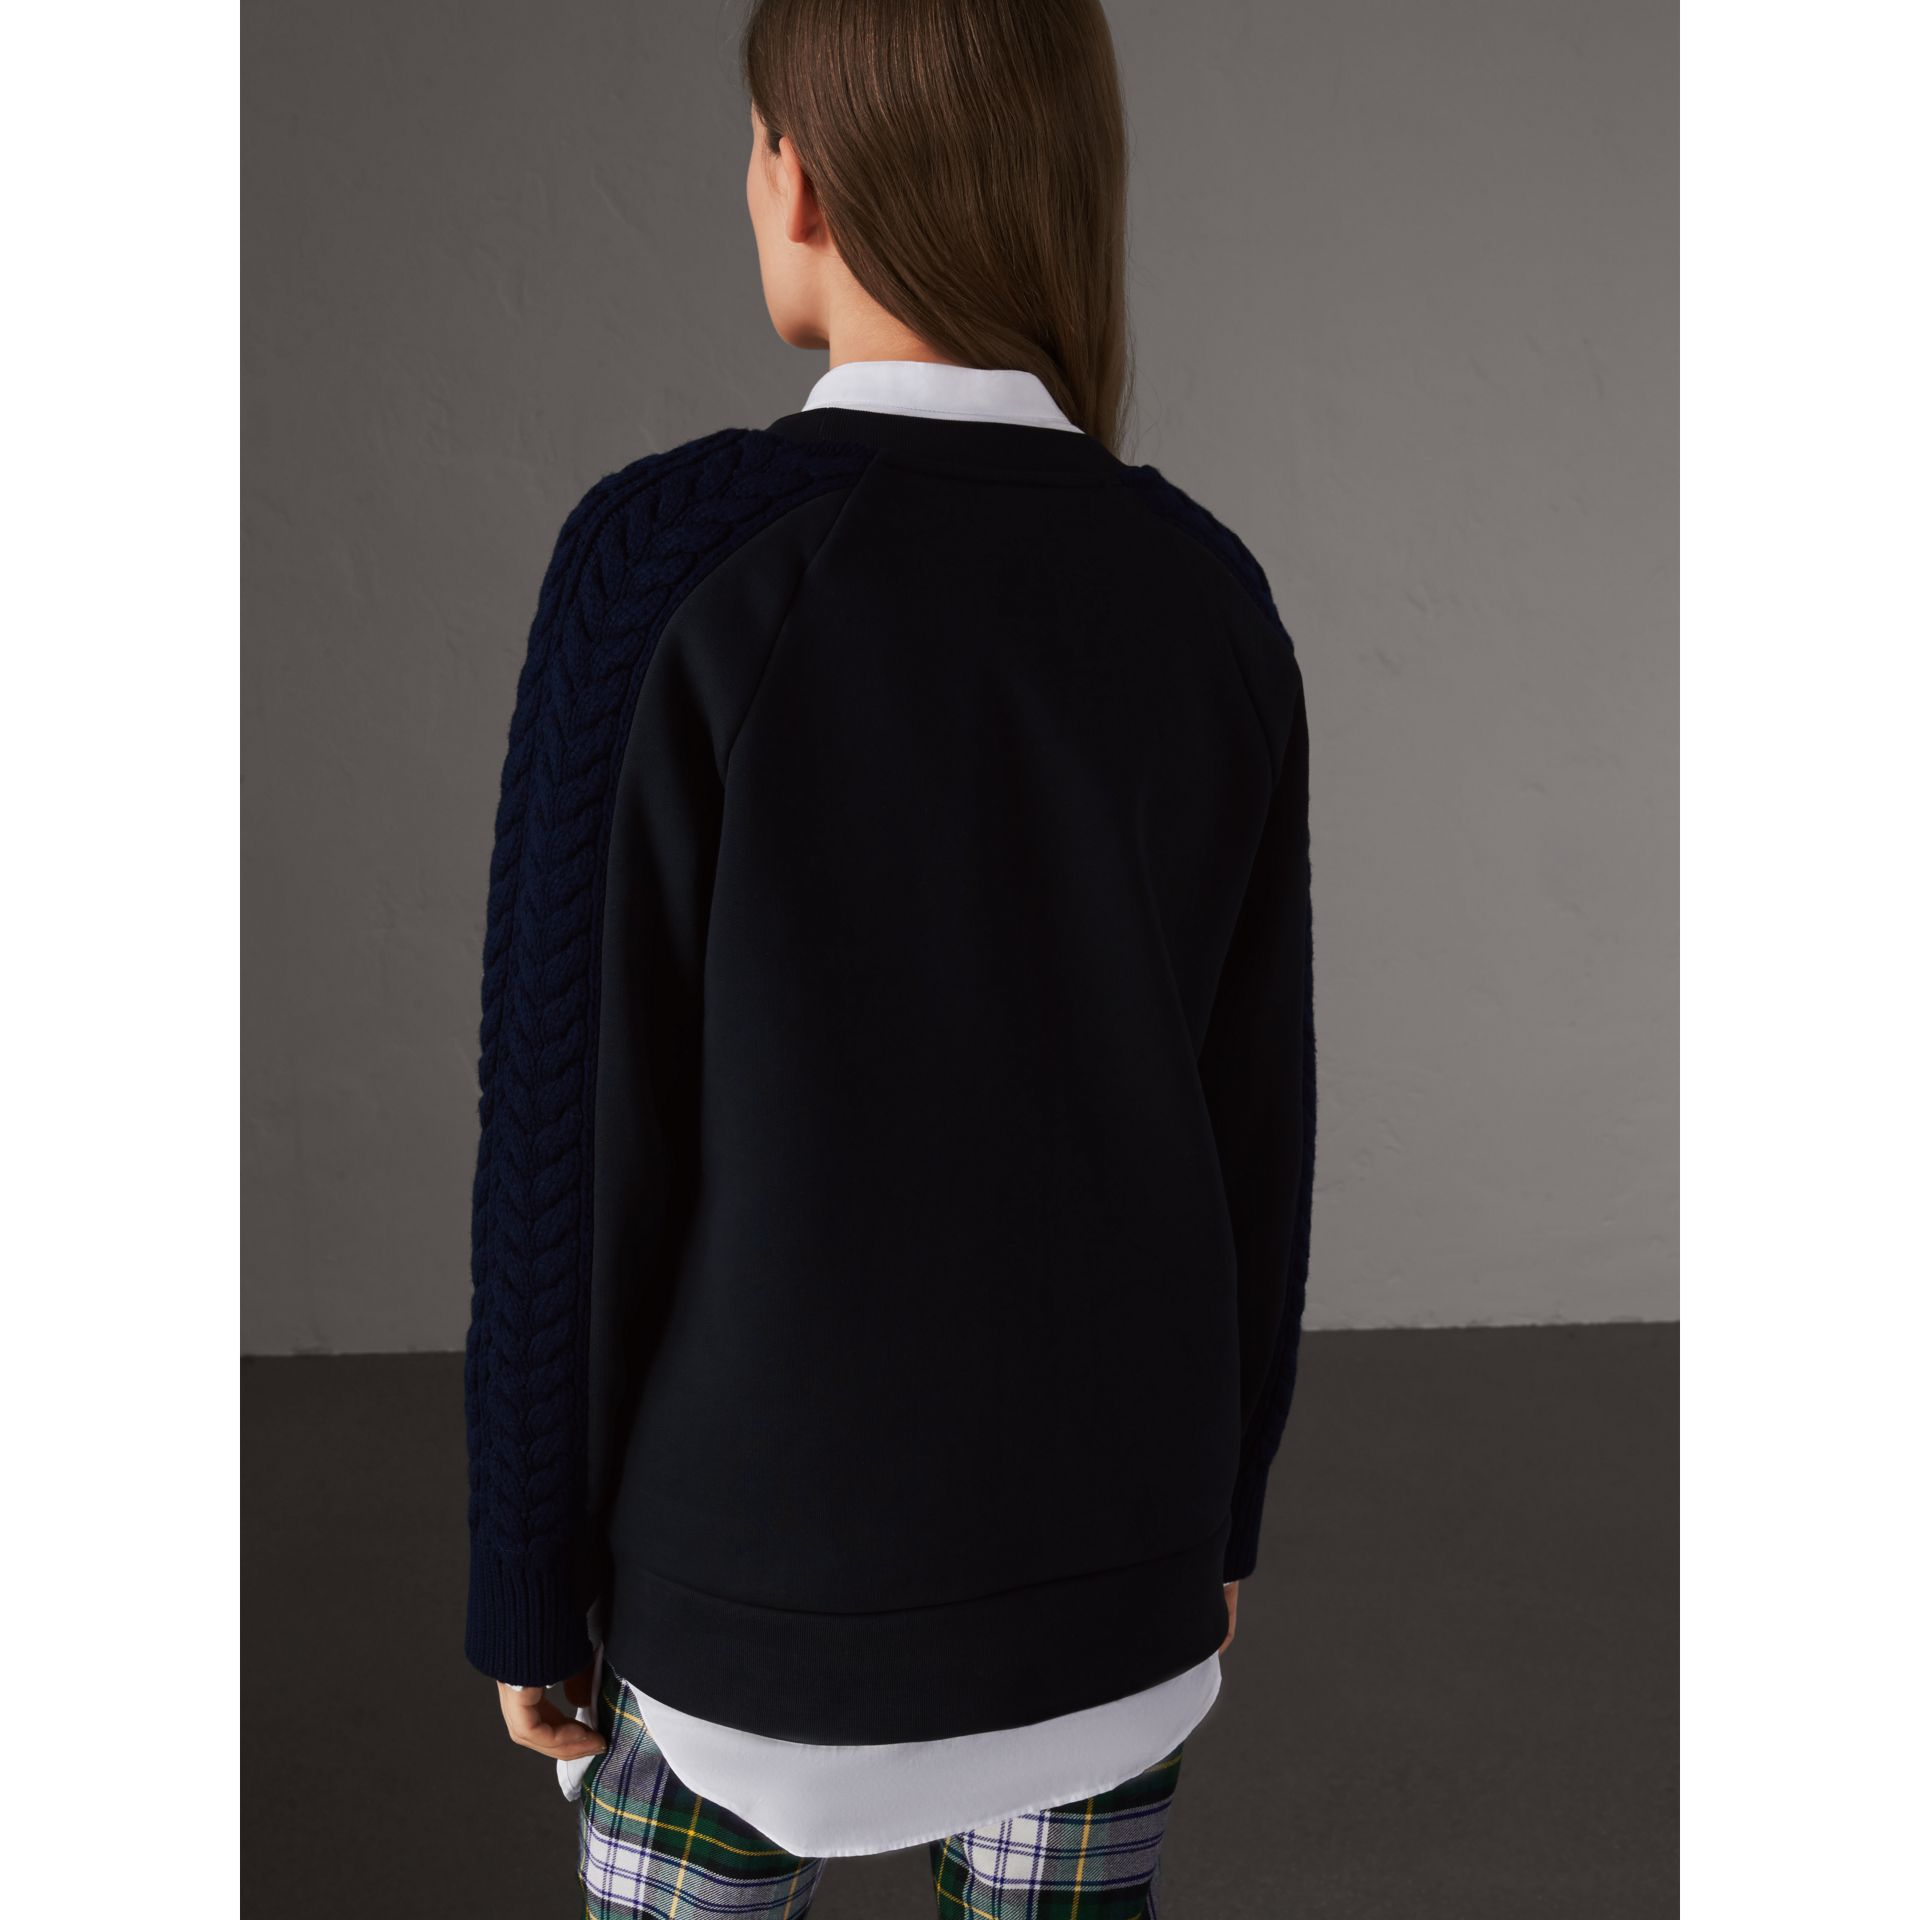 Cable and Fair Isle Knit Detail Cotton Sweatshirt in Navy - Women | Burberry Canada - gallery image 3